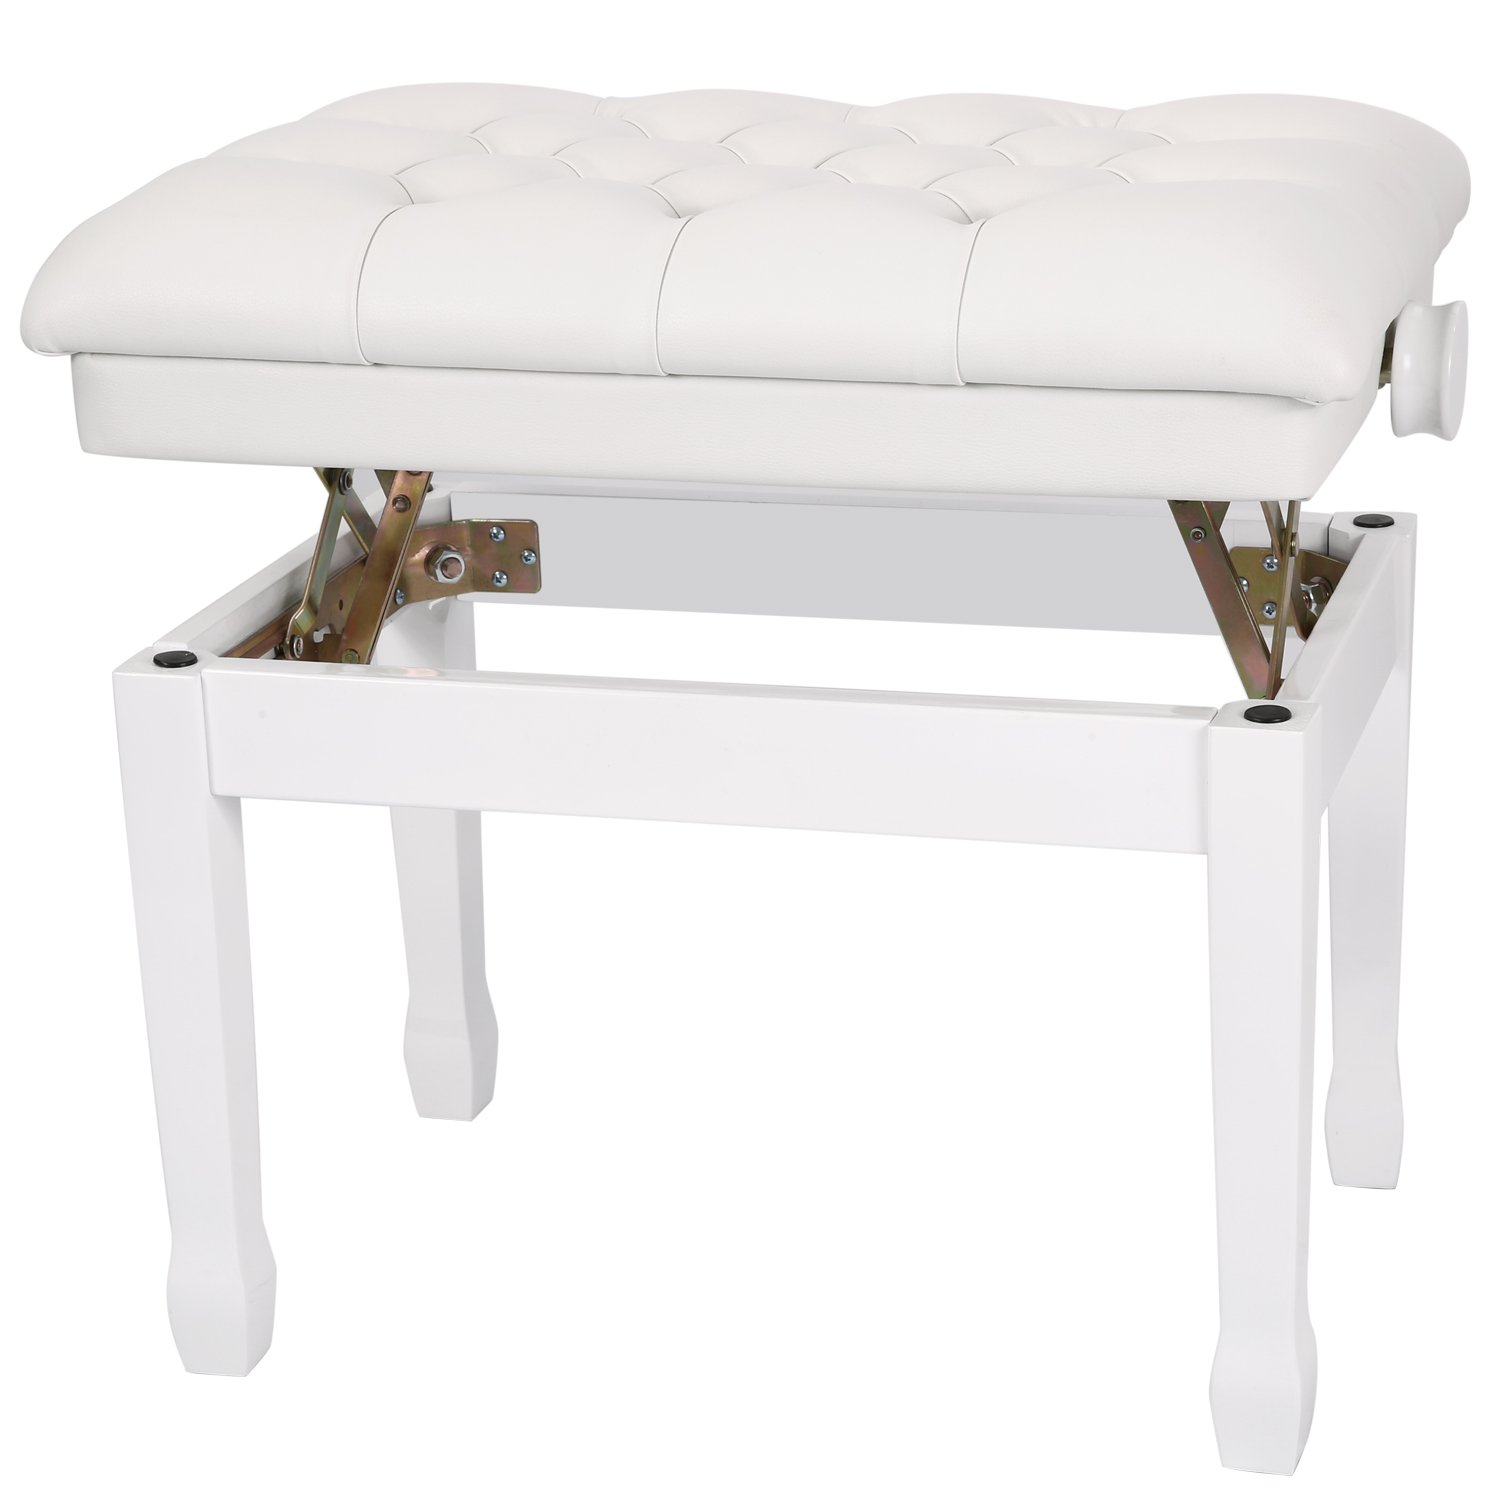 Neewer 18-22 inches / 46-56 centimeters Height Adjustable Dual Padded Wooden Artist Piano Bench with Thick and Soft PU Leather Pillow Cushion for Deluxe Comfort (White) 40089767